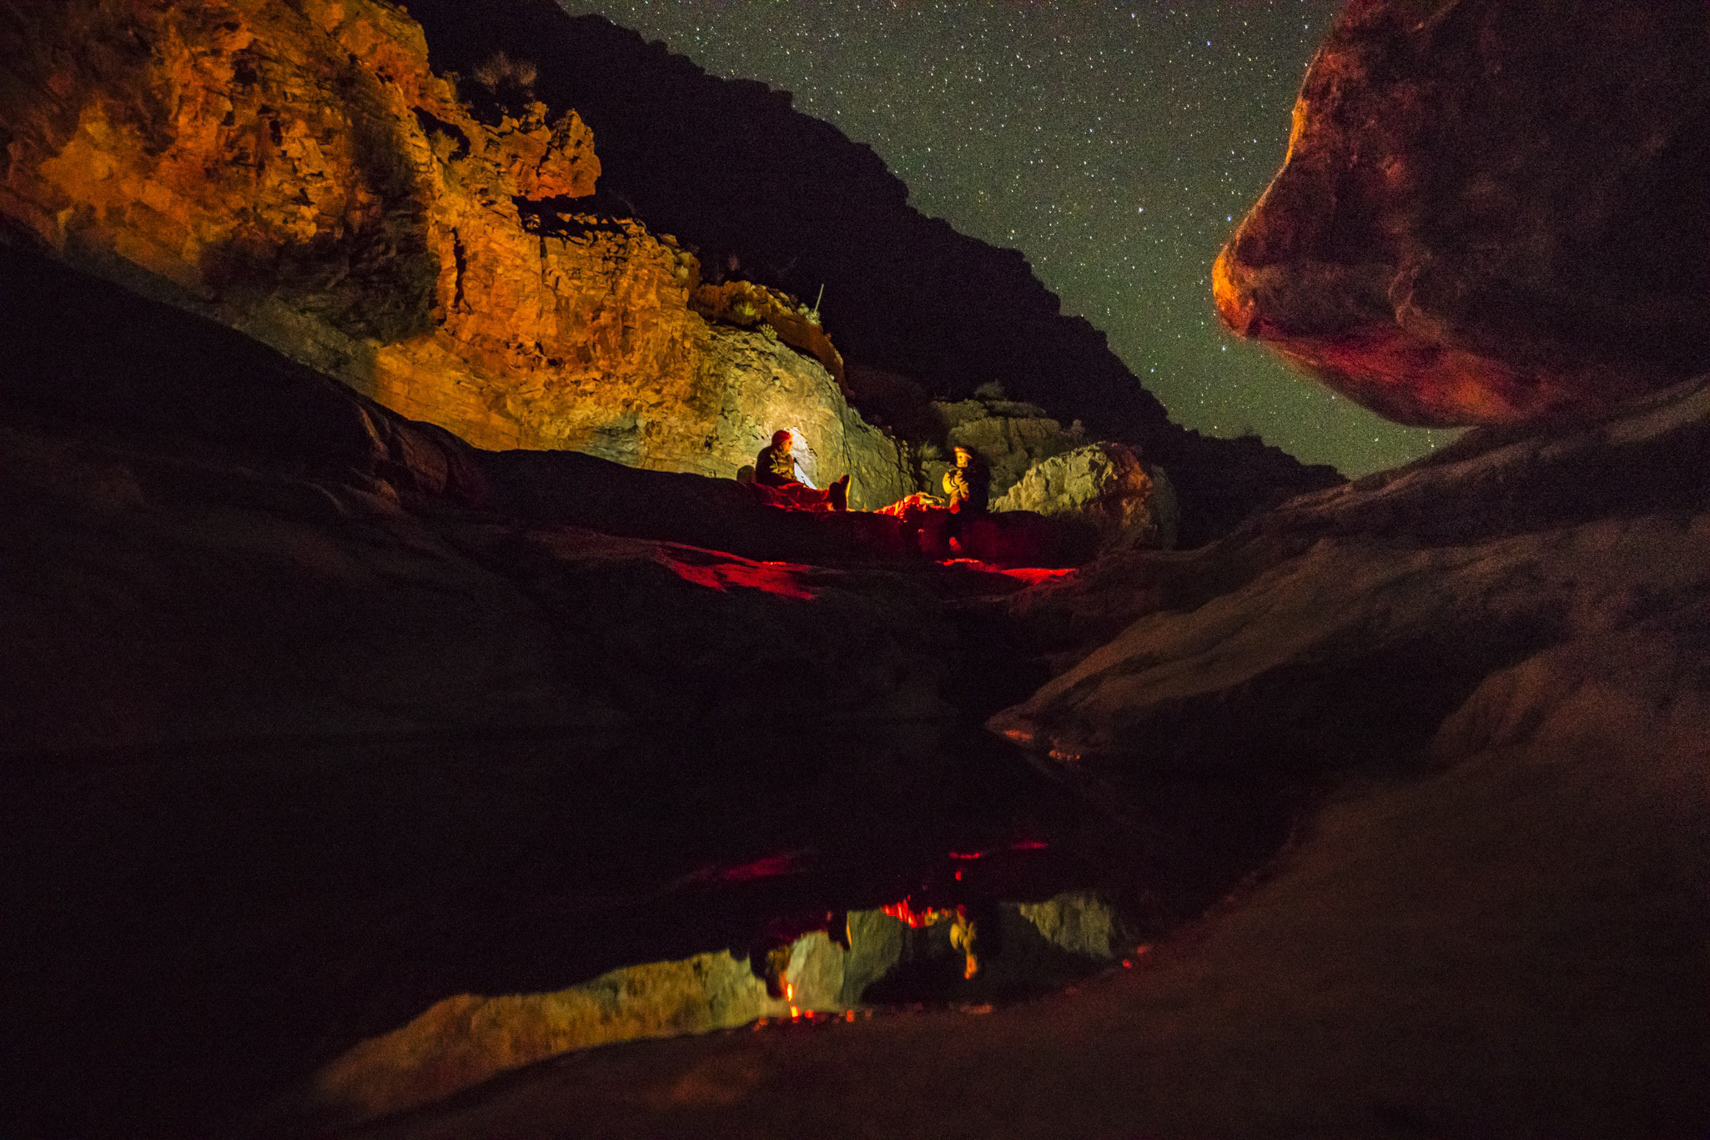 Olo Canyon at Night